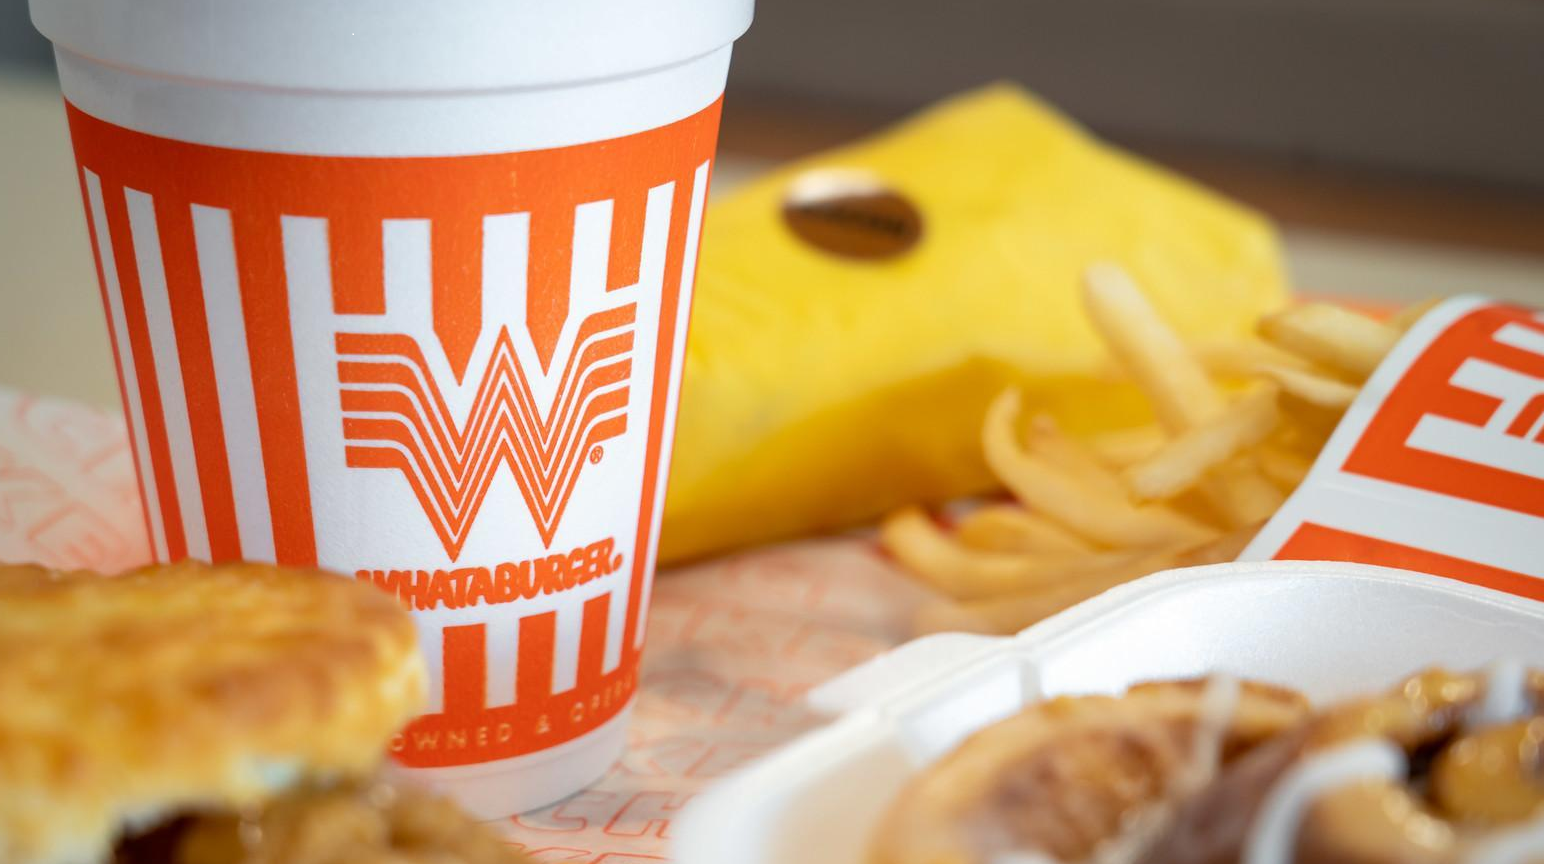 Photo by Whataburger Facebook